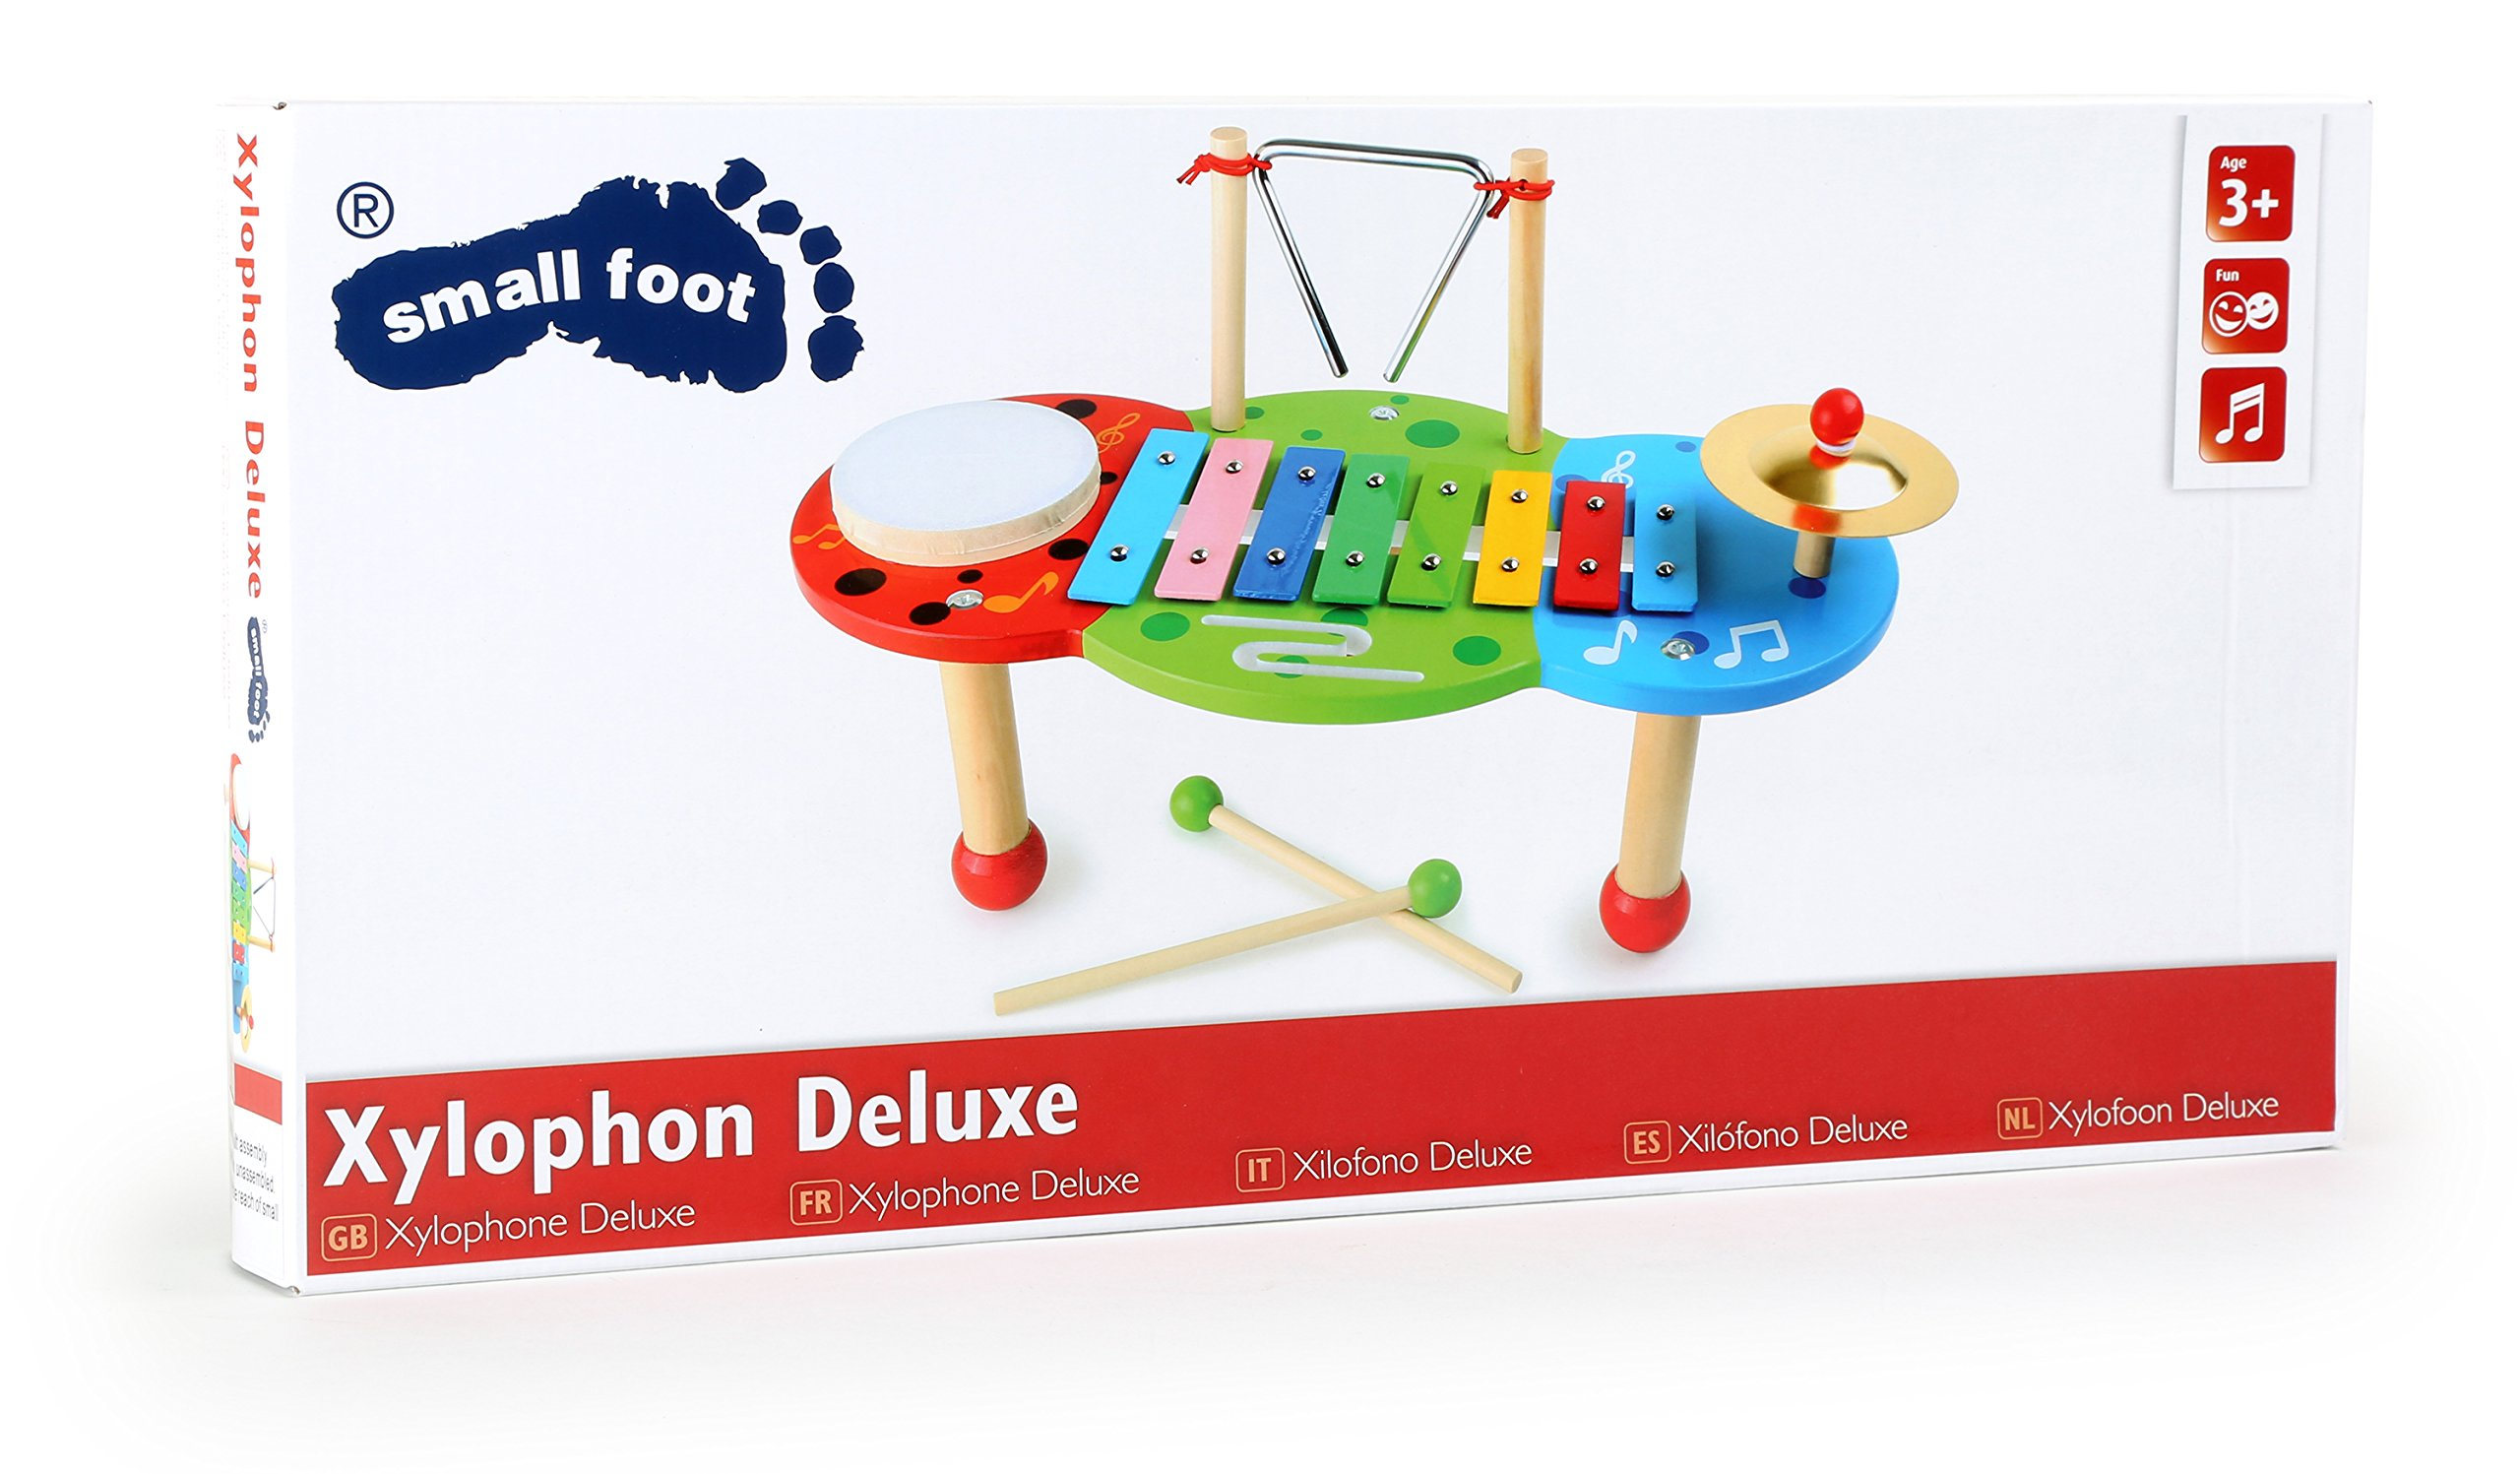 small foot baby Xylophone Deluxe